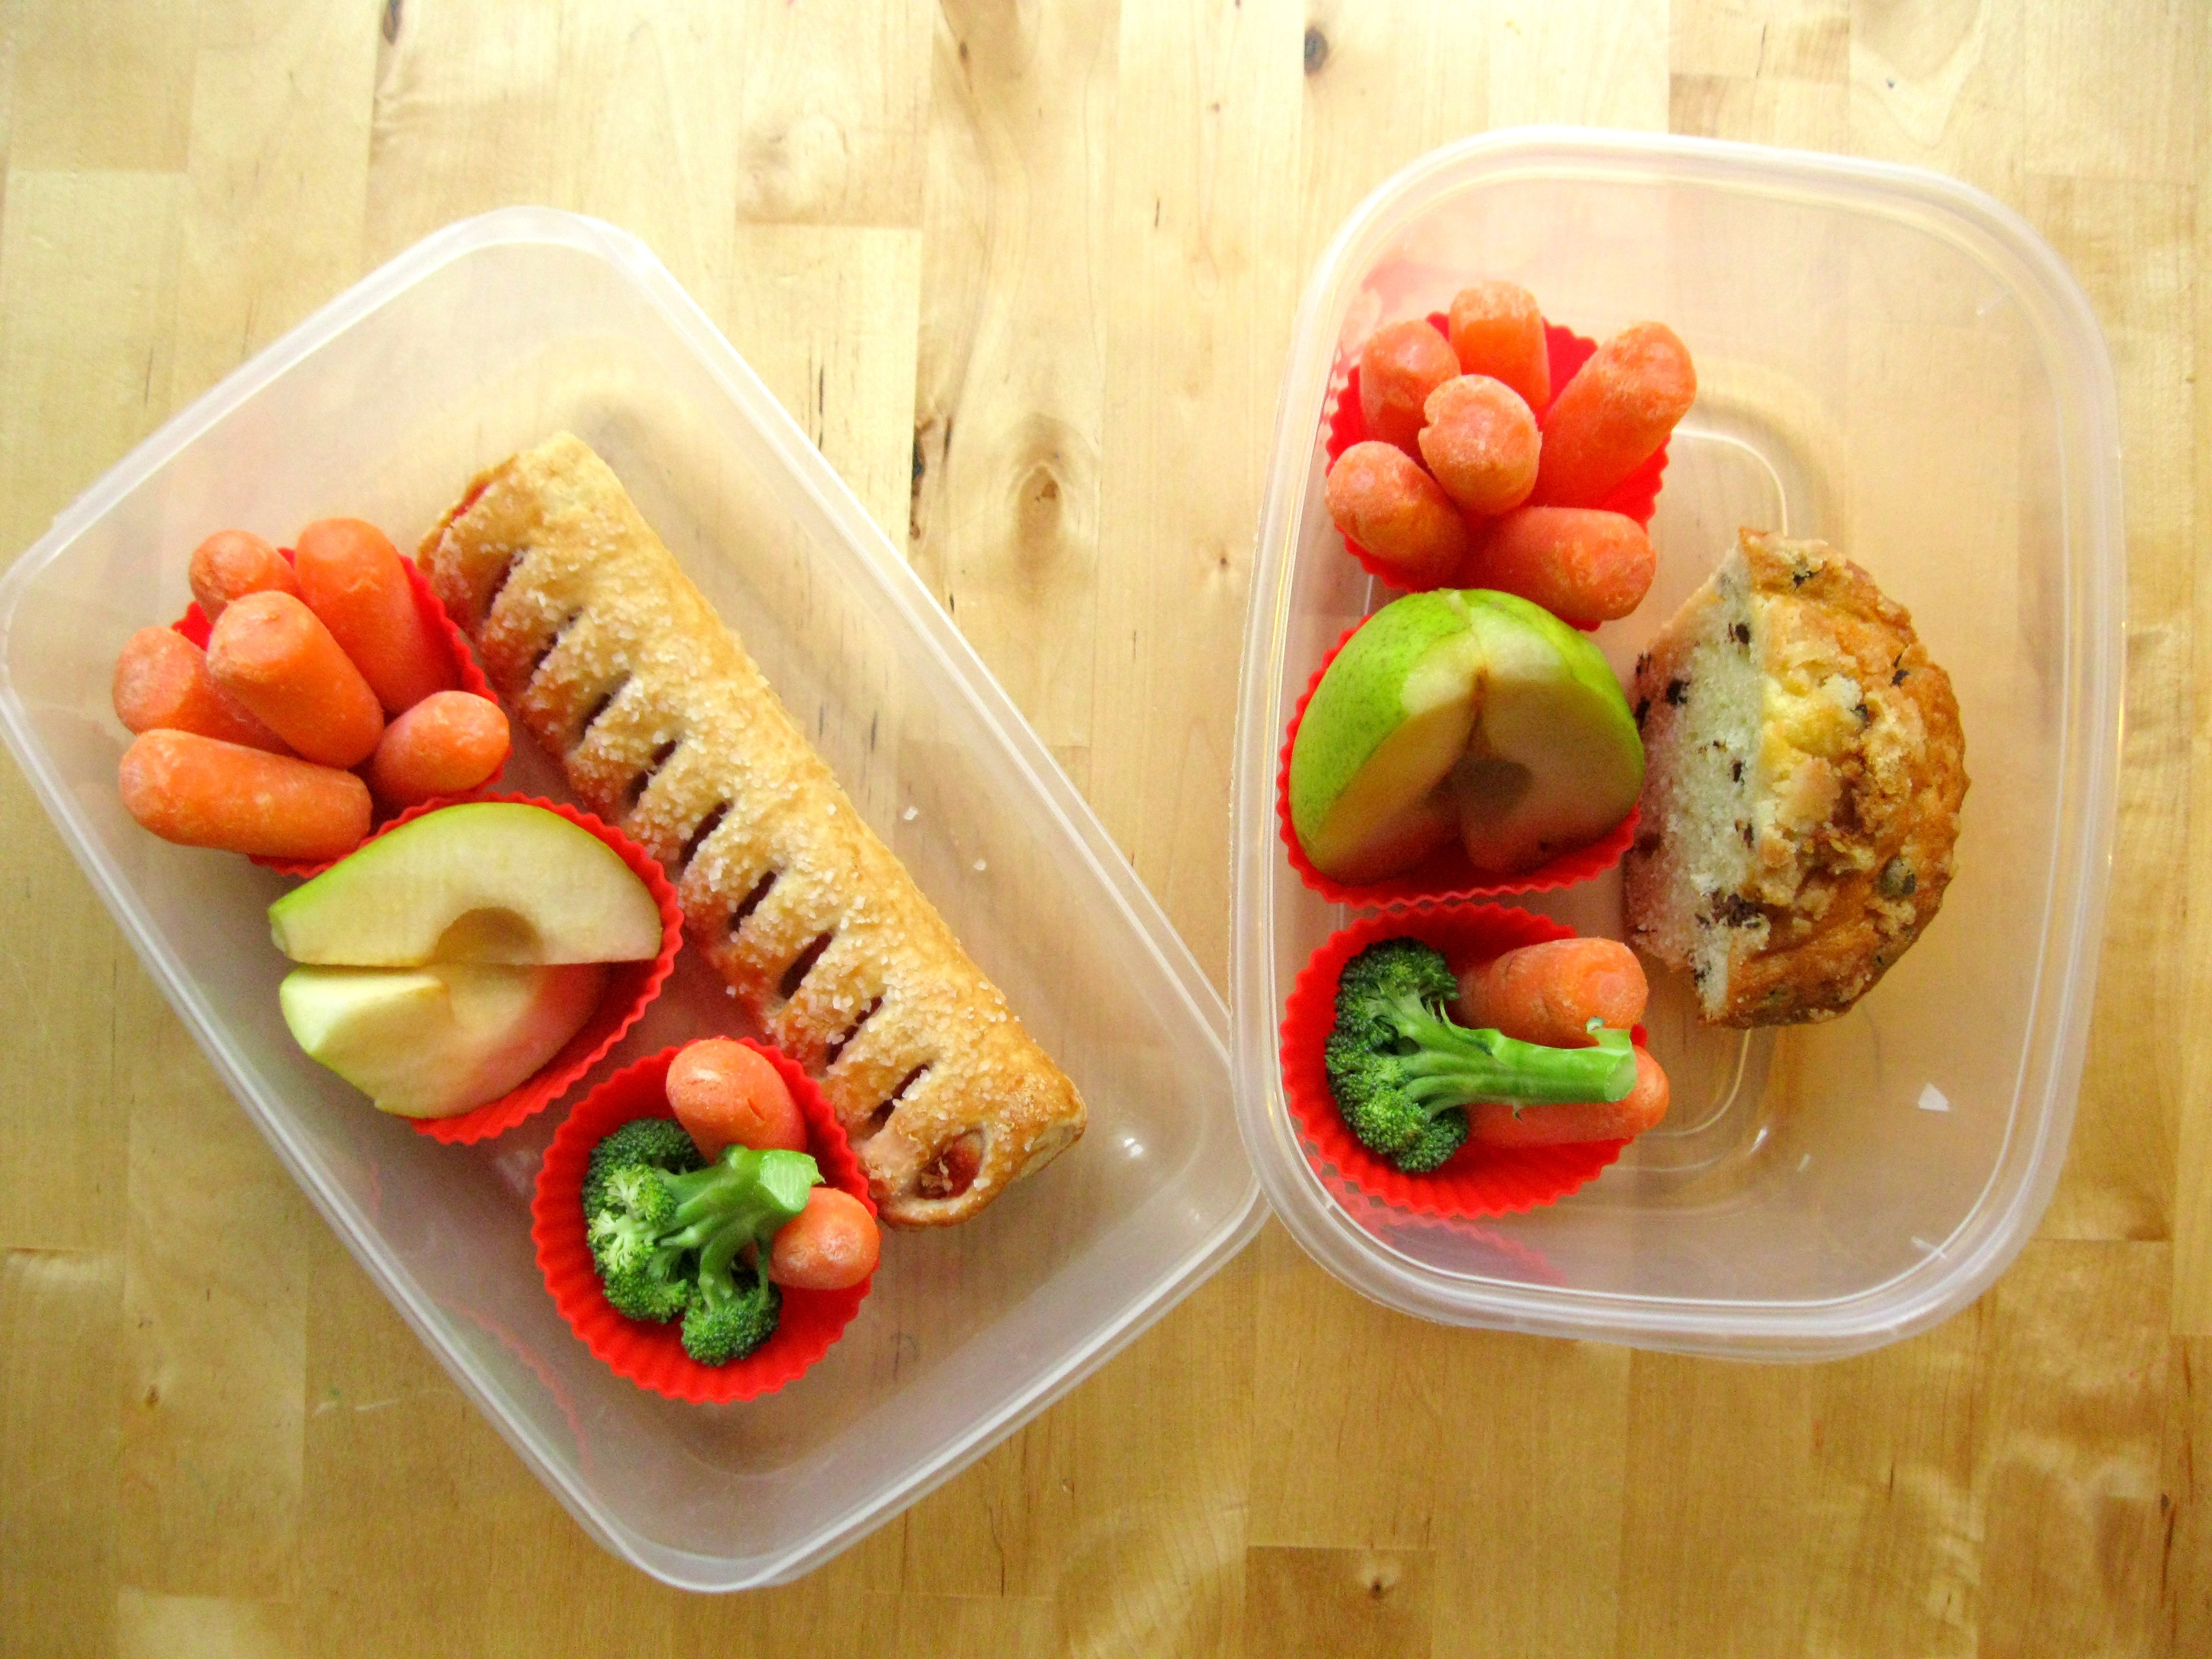 Healthy Kids Snacks  In the Kitchen Self Serving Snack Box Tutorial and